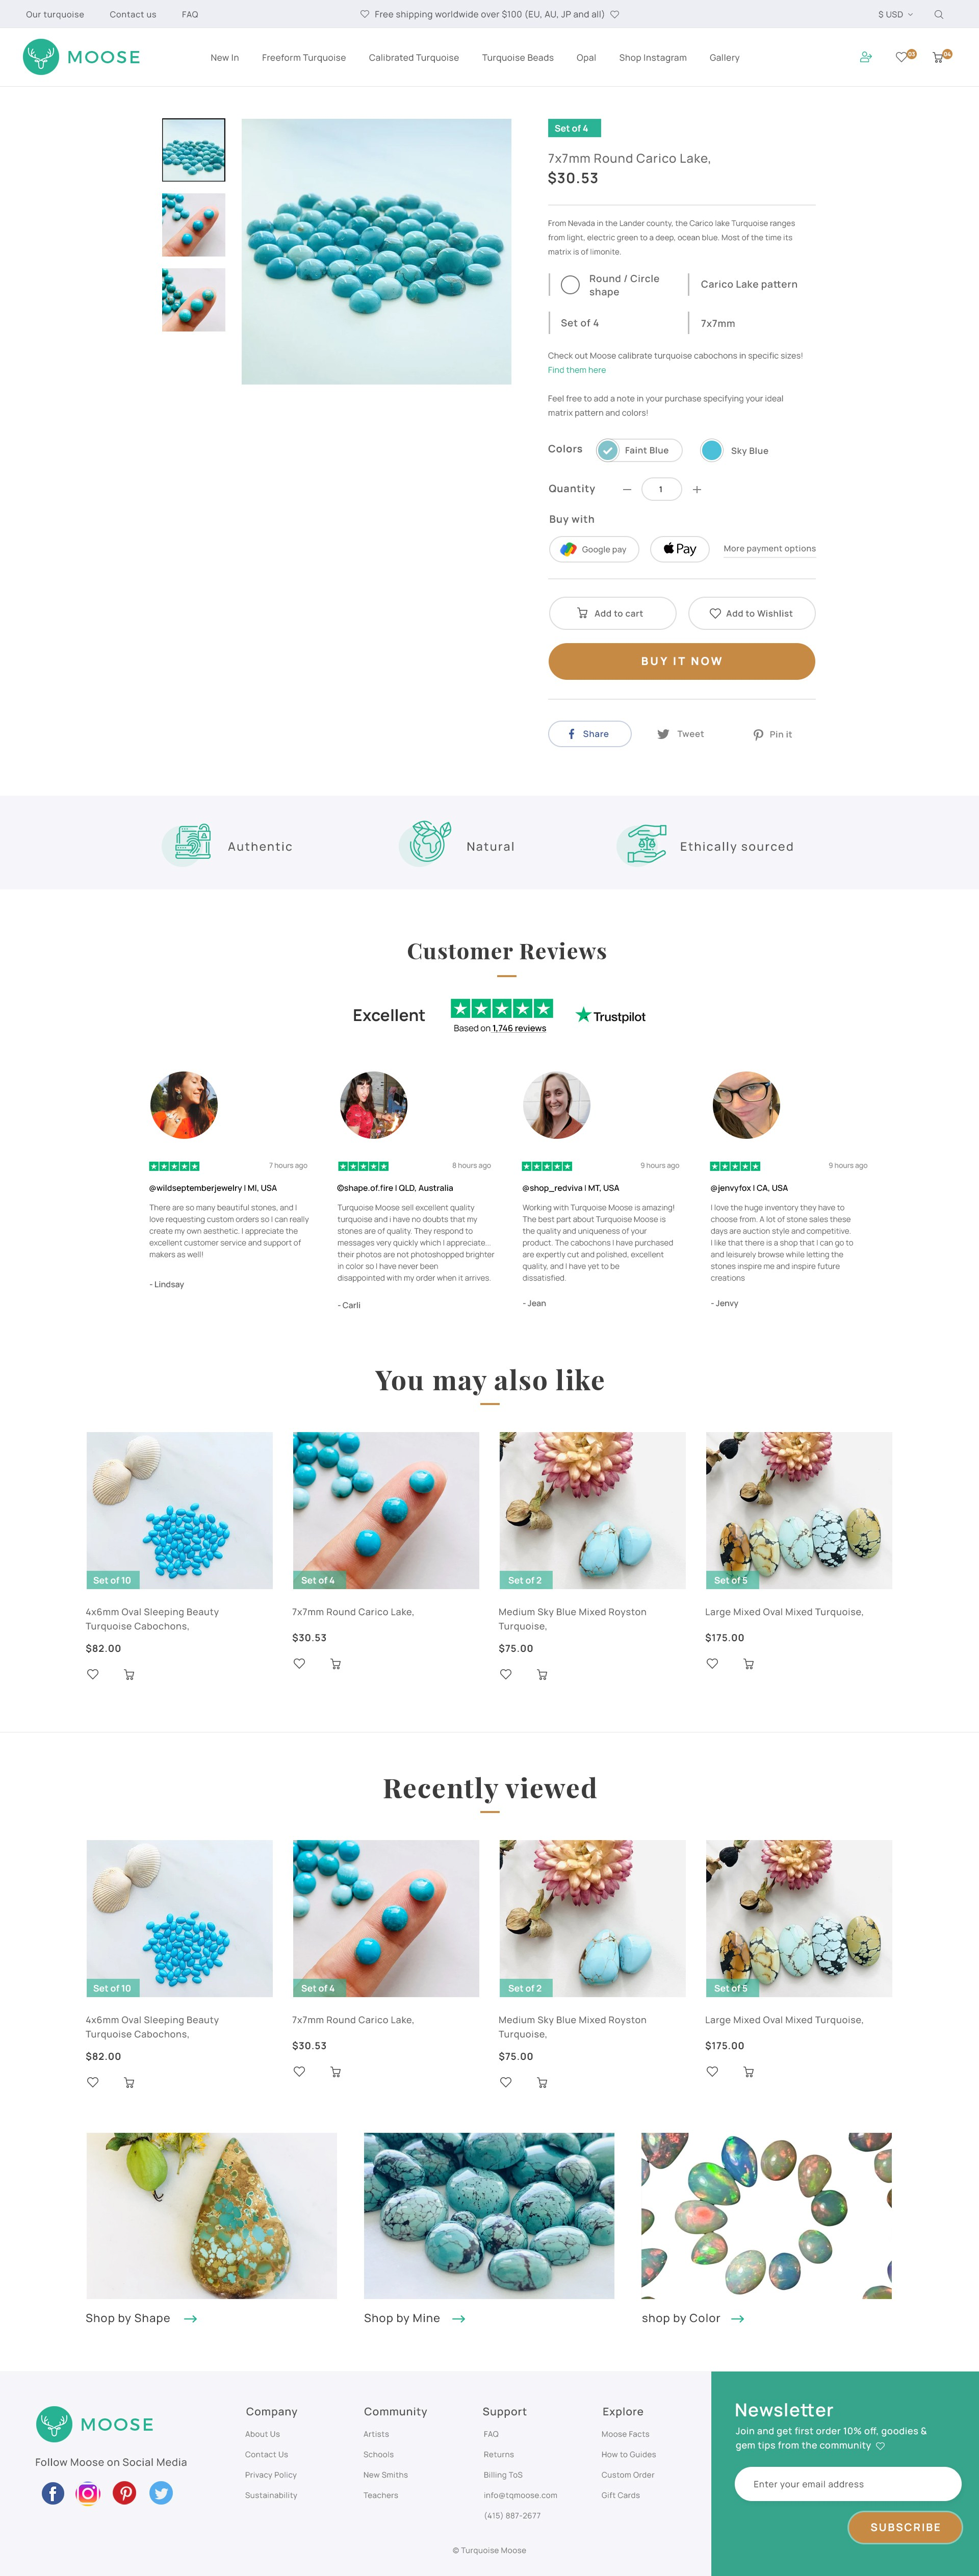 Design a gemstone supplier Shopify site to attract jewelry designers